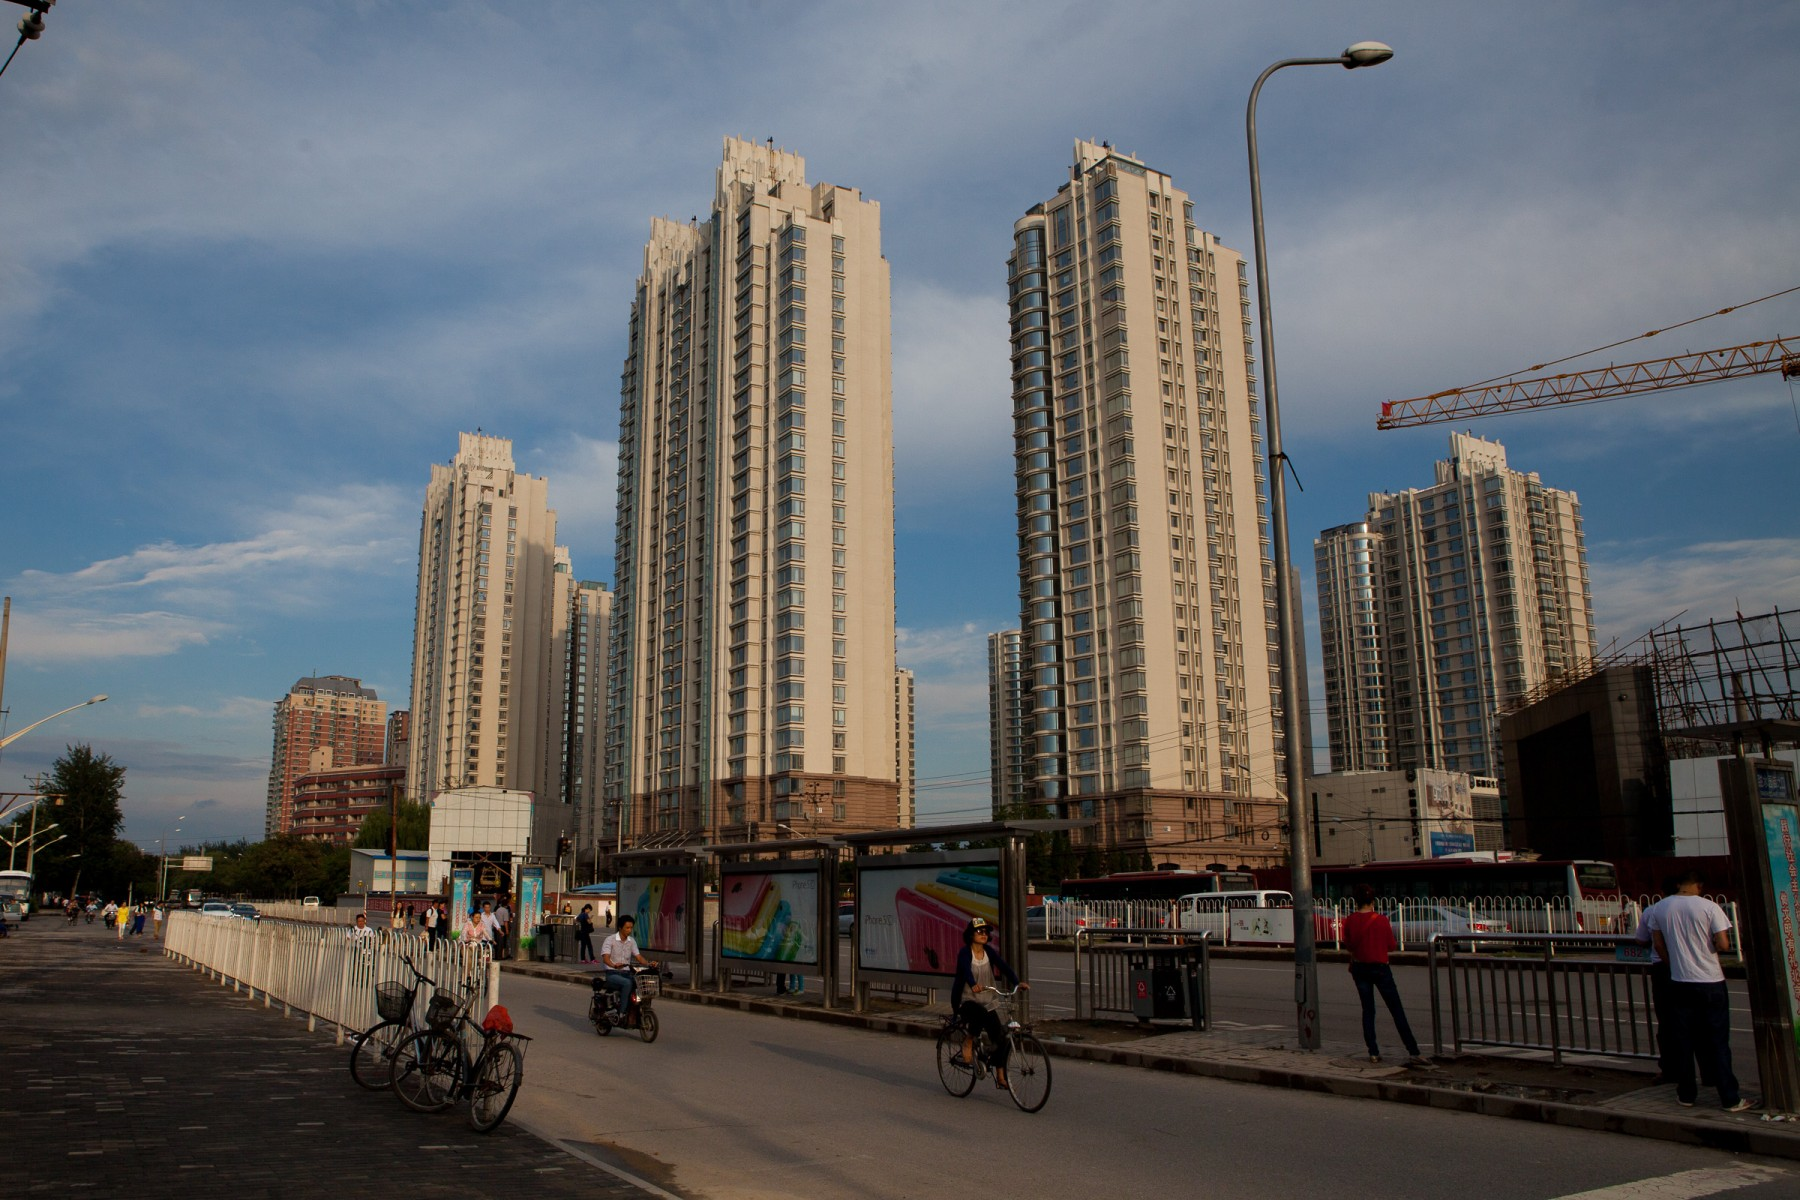 Apartments towers in Beijing